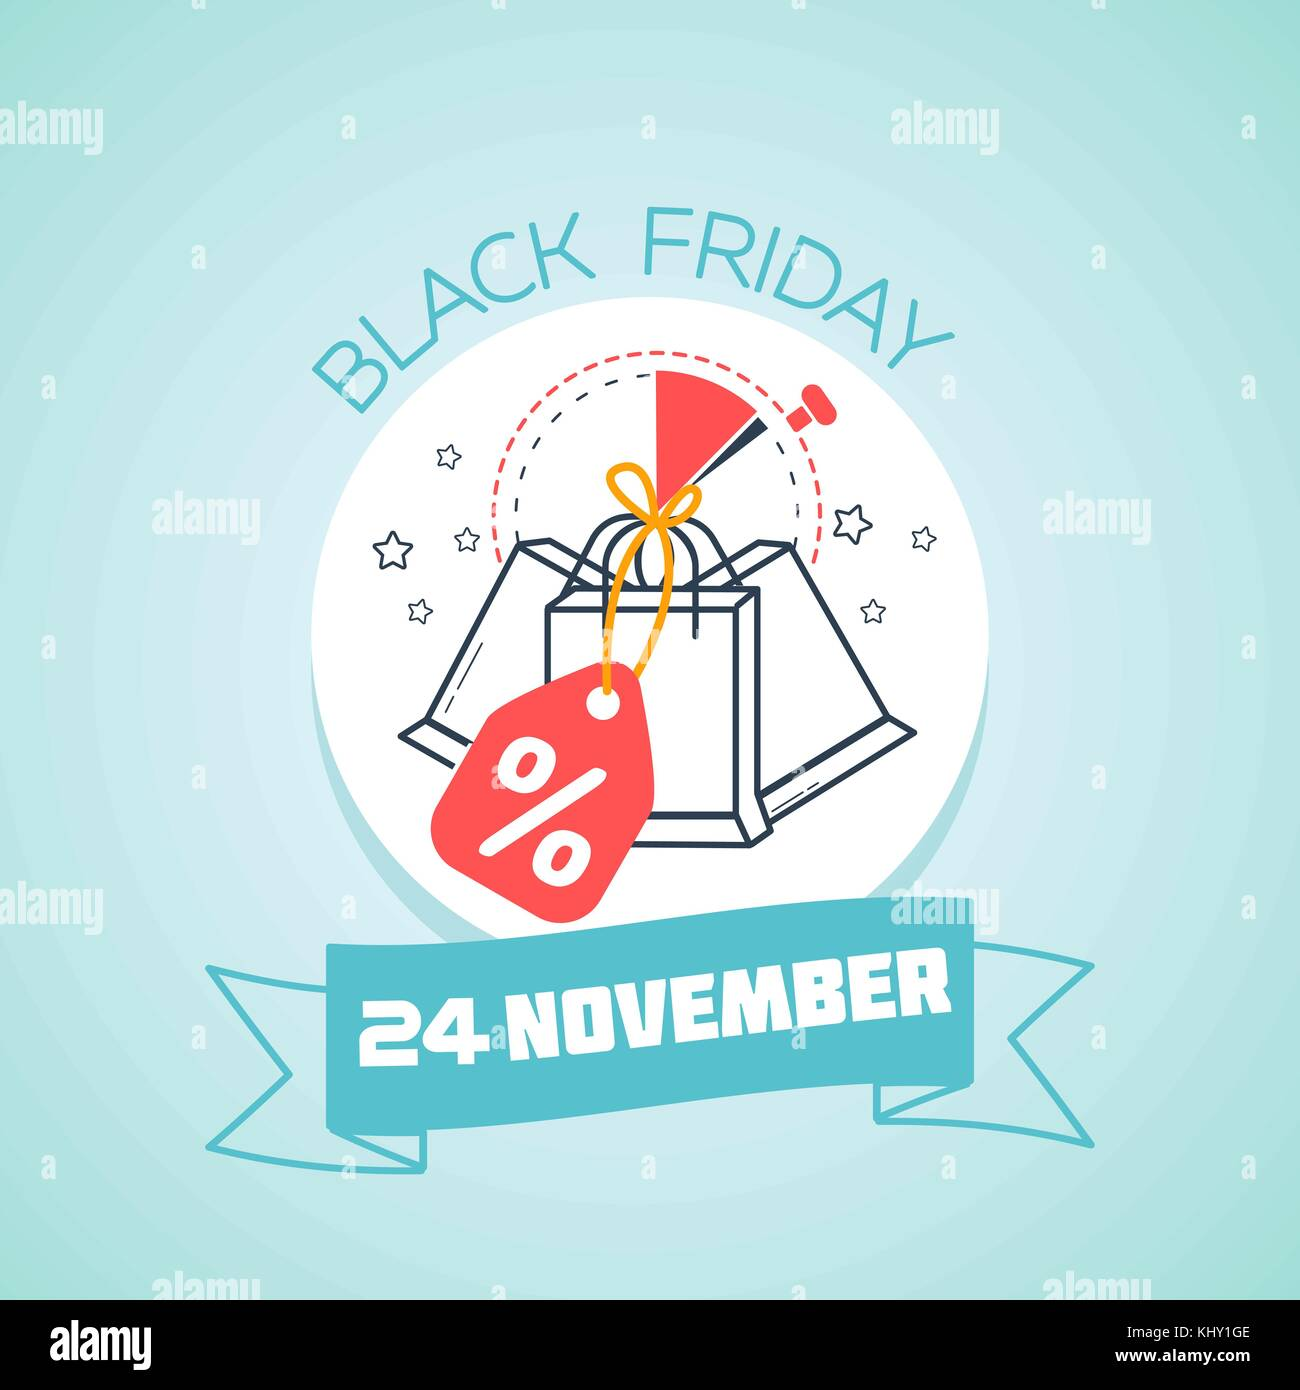 Calendar for each day on november 24 greeting card holiday black calendar for each day on november 24 greeting card holiday black friday icon in the linear style kristyandbryce Images